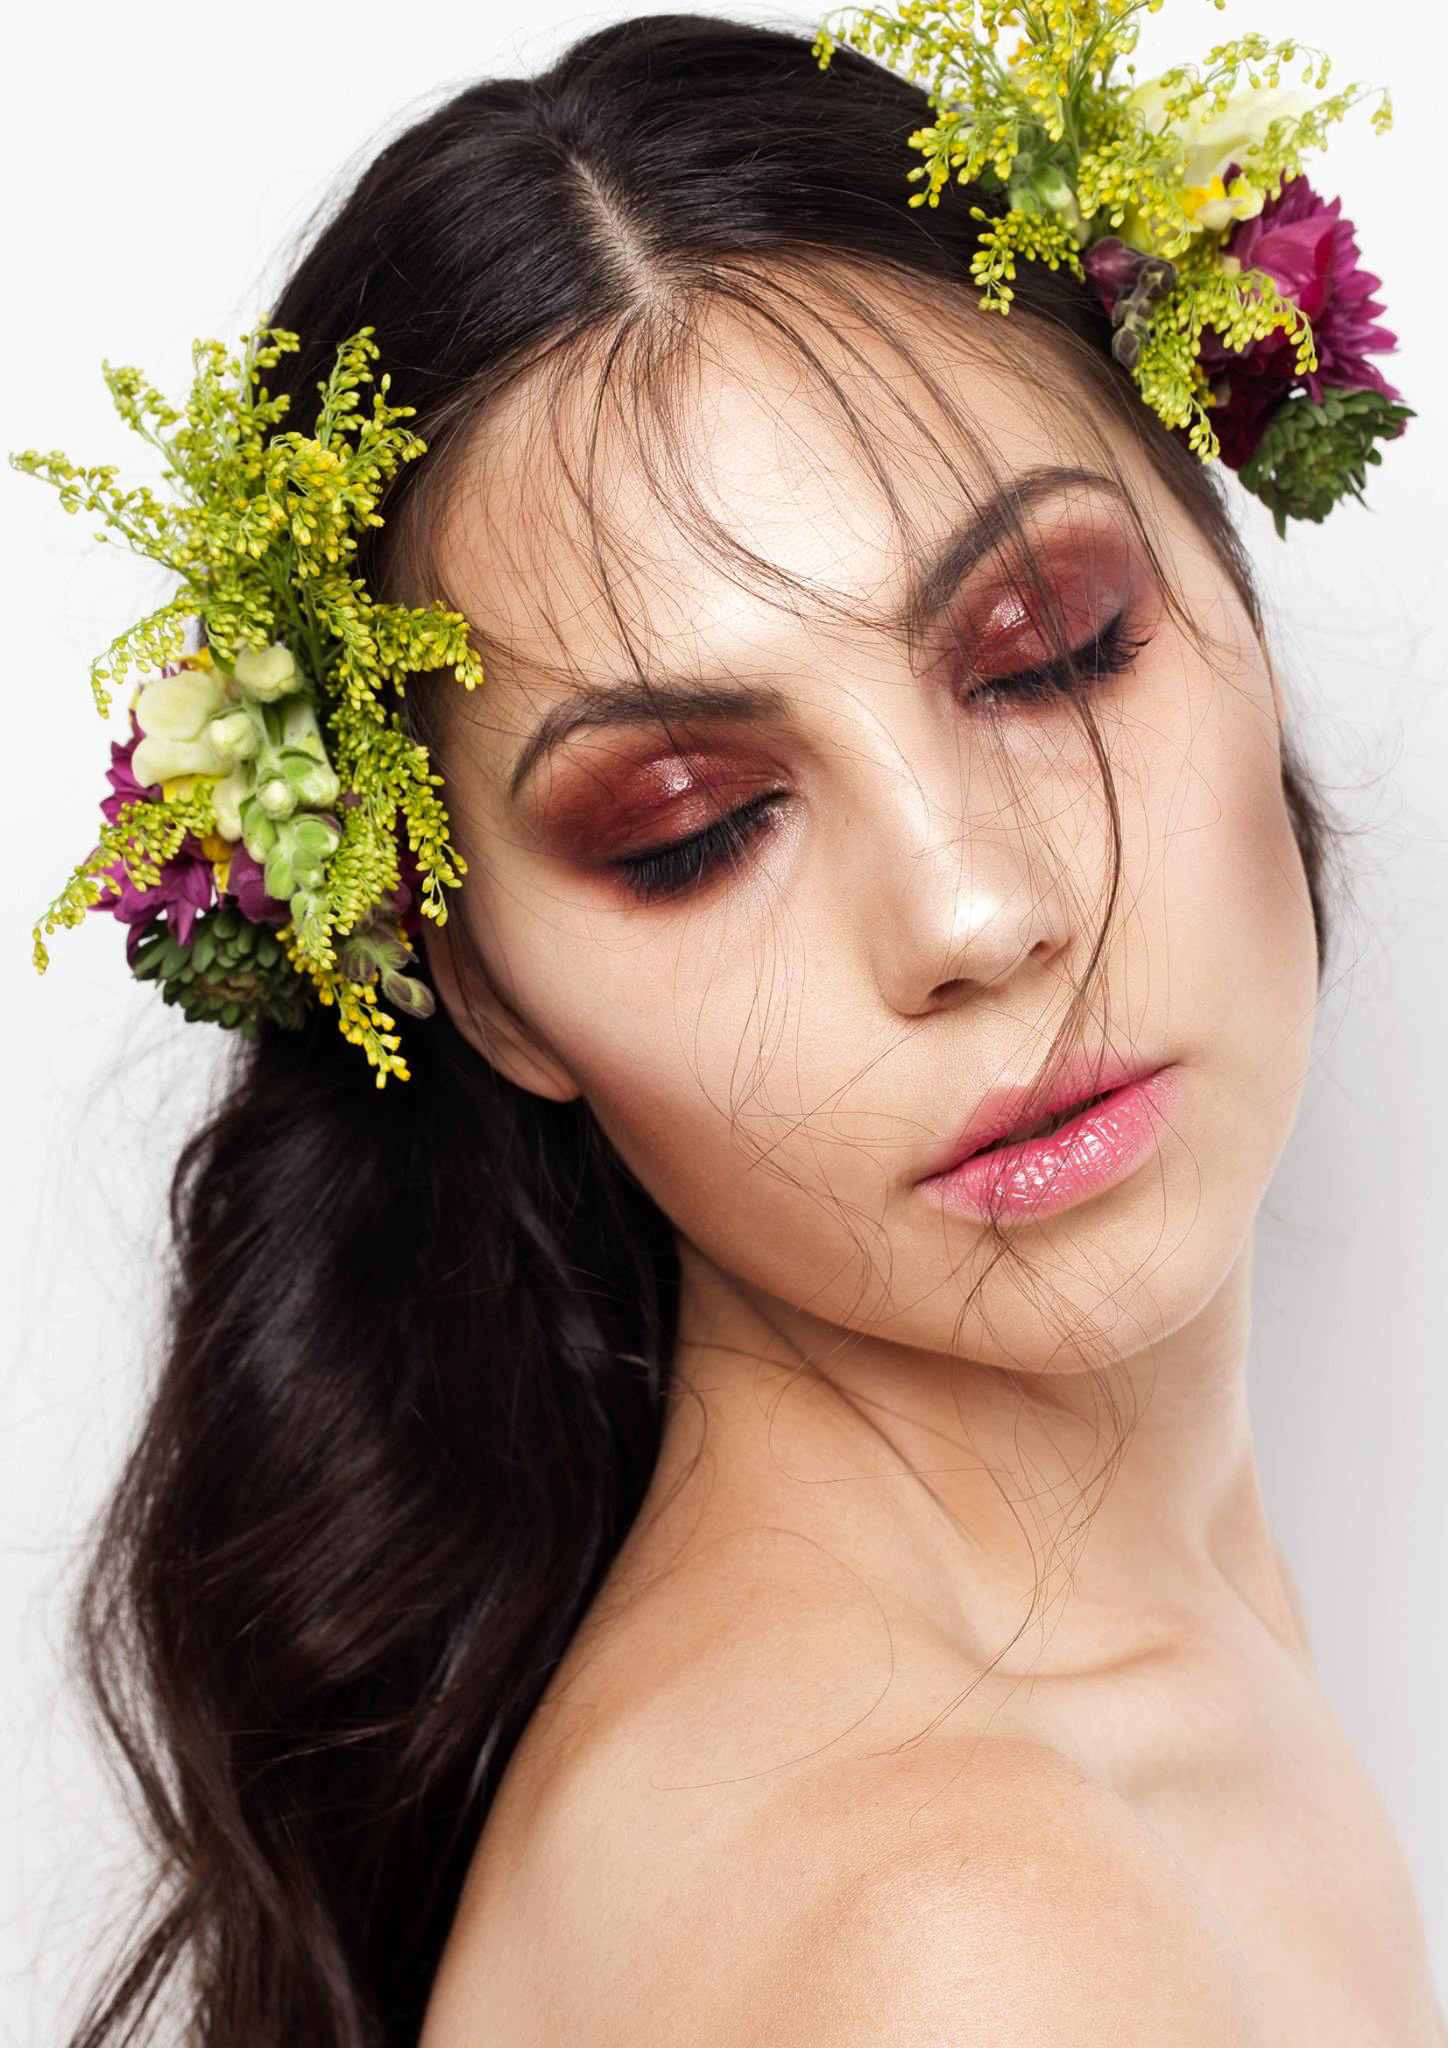 Natural Beauty Makeup with Glowing, Dewy, Highlighted Skin, Glossy Eyes. By Jaynelle Lording